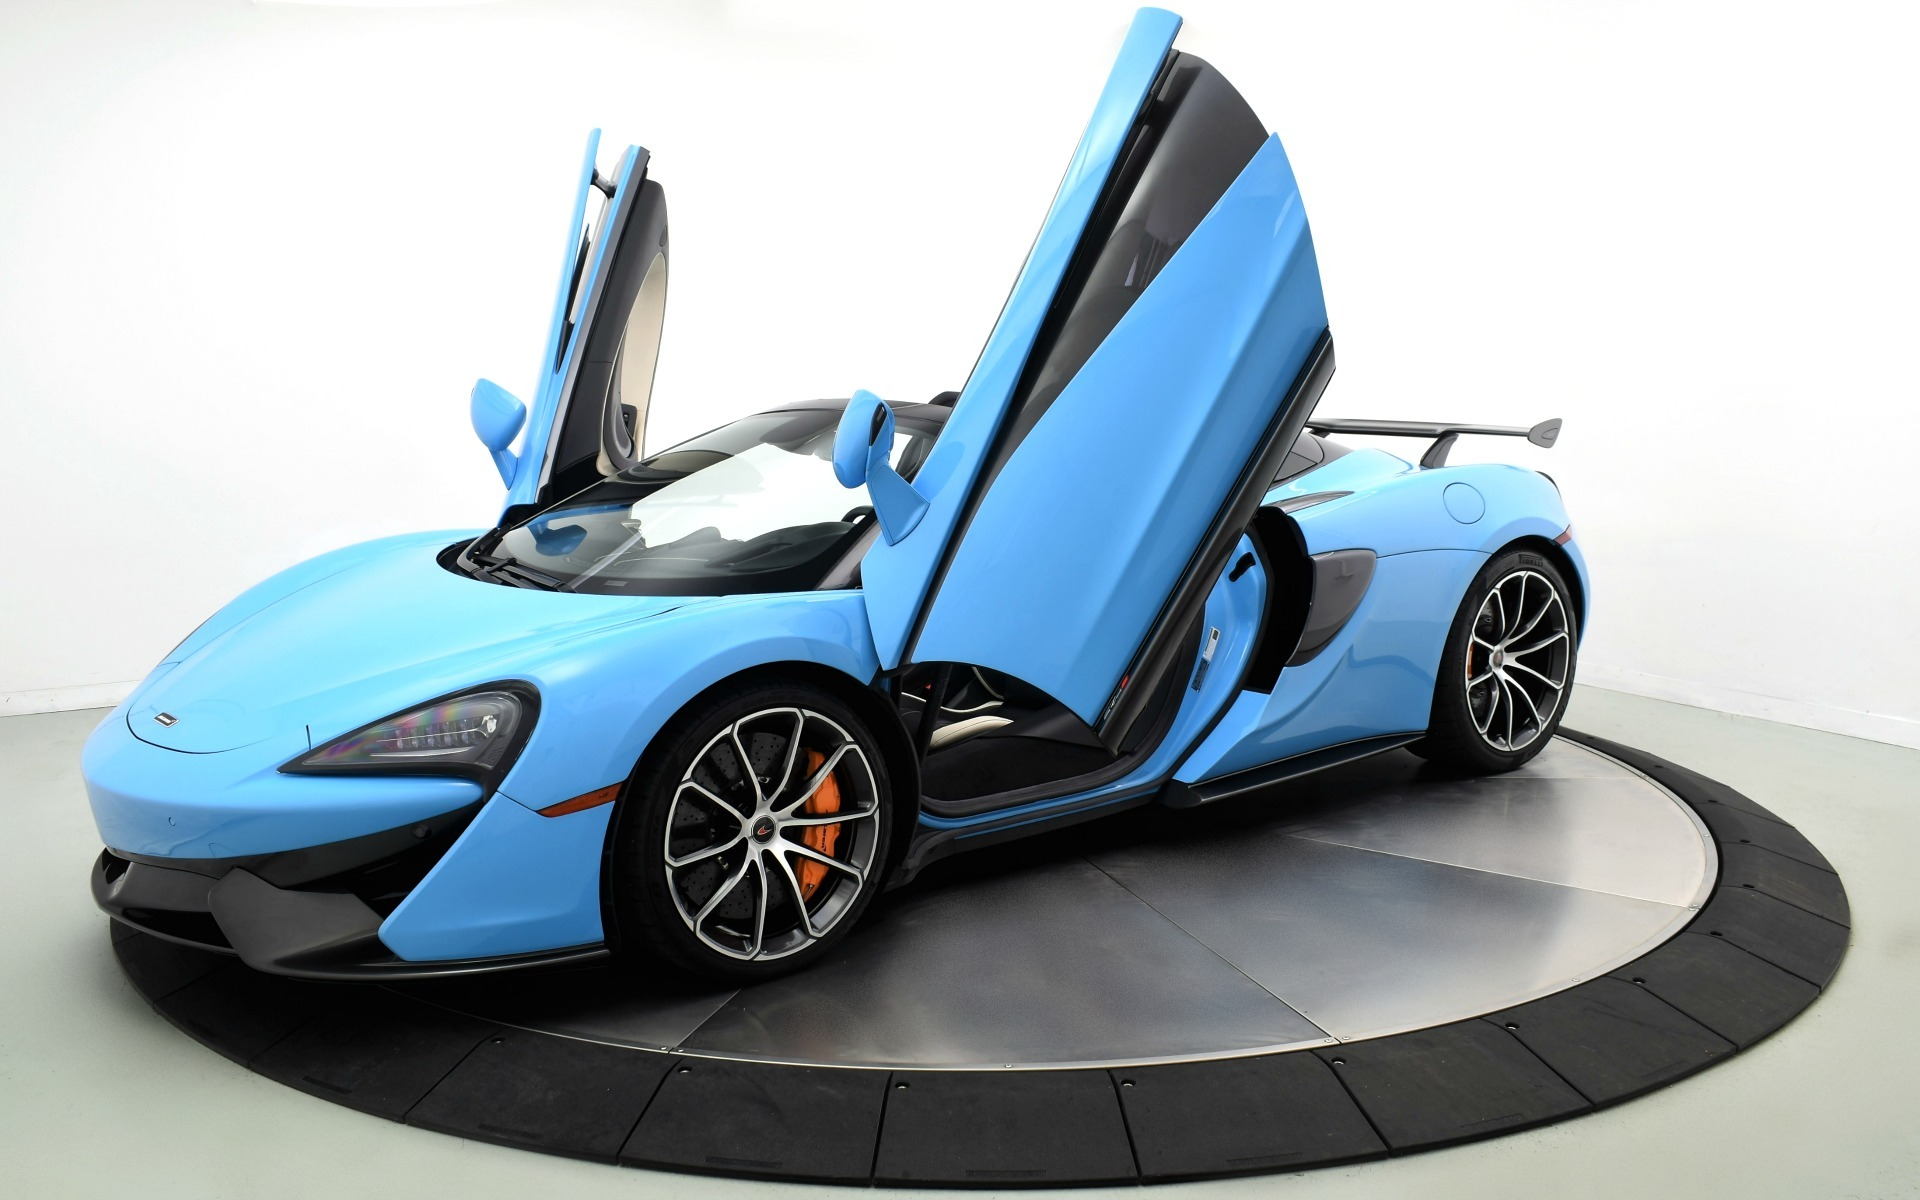 2018 mclaren 570s spider for sale in norwell ma 004209 mclaren boston. Black Bedroom Furniture Sets. Home Design Ideas